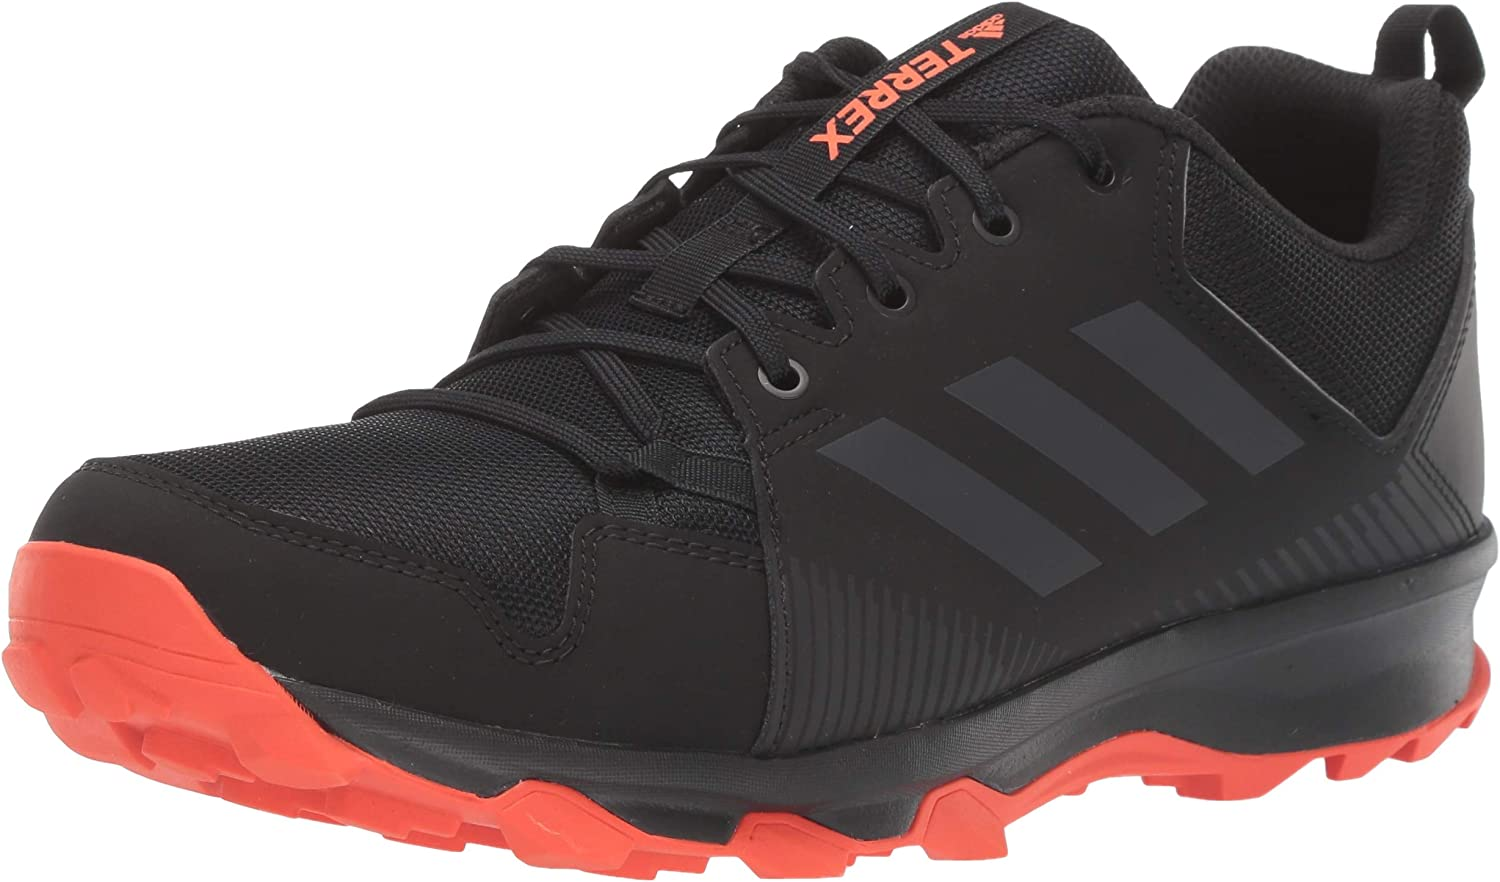 adidas outdoor Men's Terrex Tracerocker Trail Running Shoe, Black Carbon Active Orange, 12.5 D US